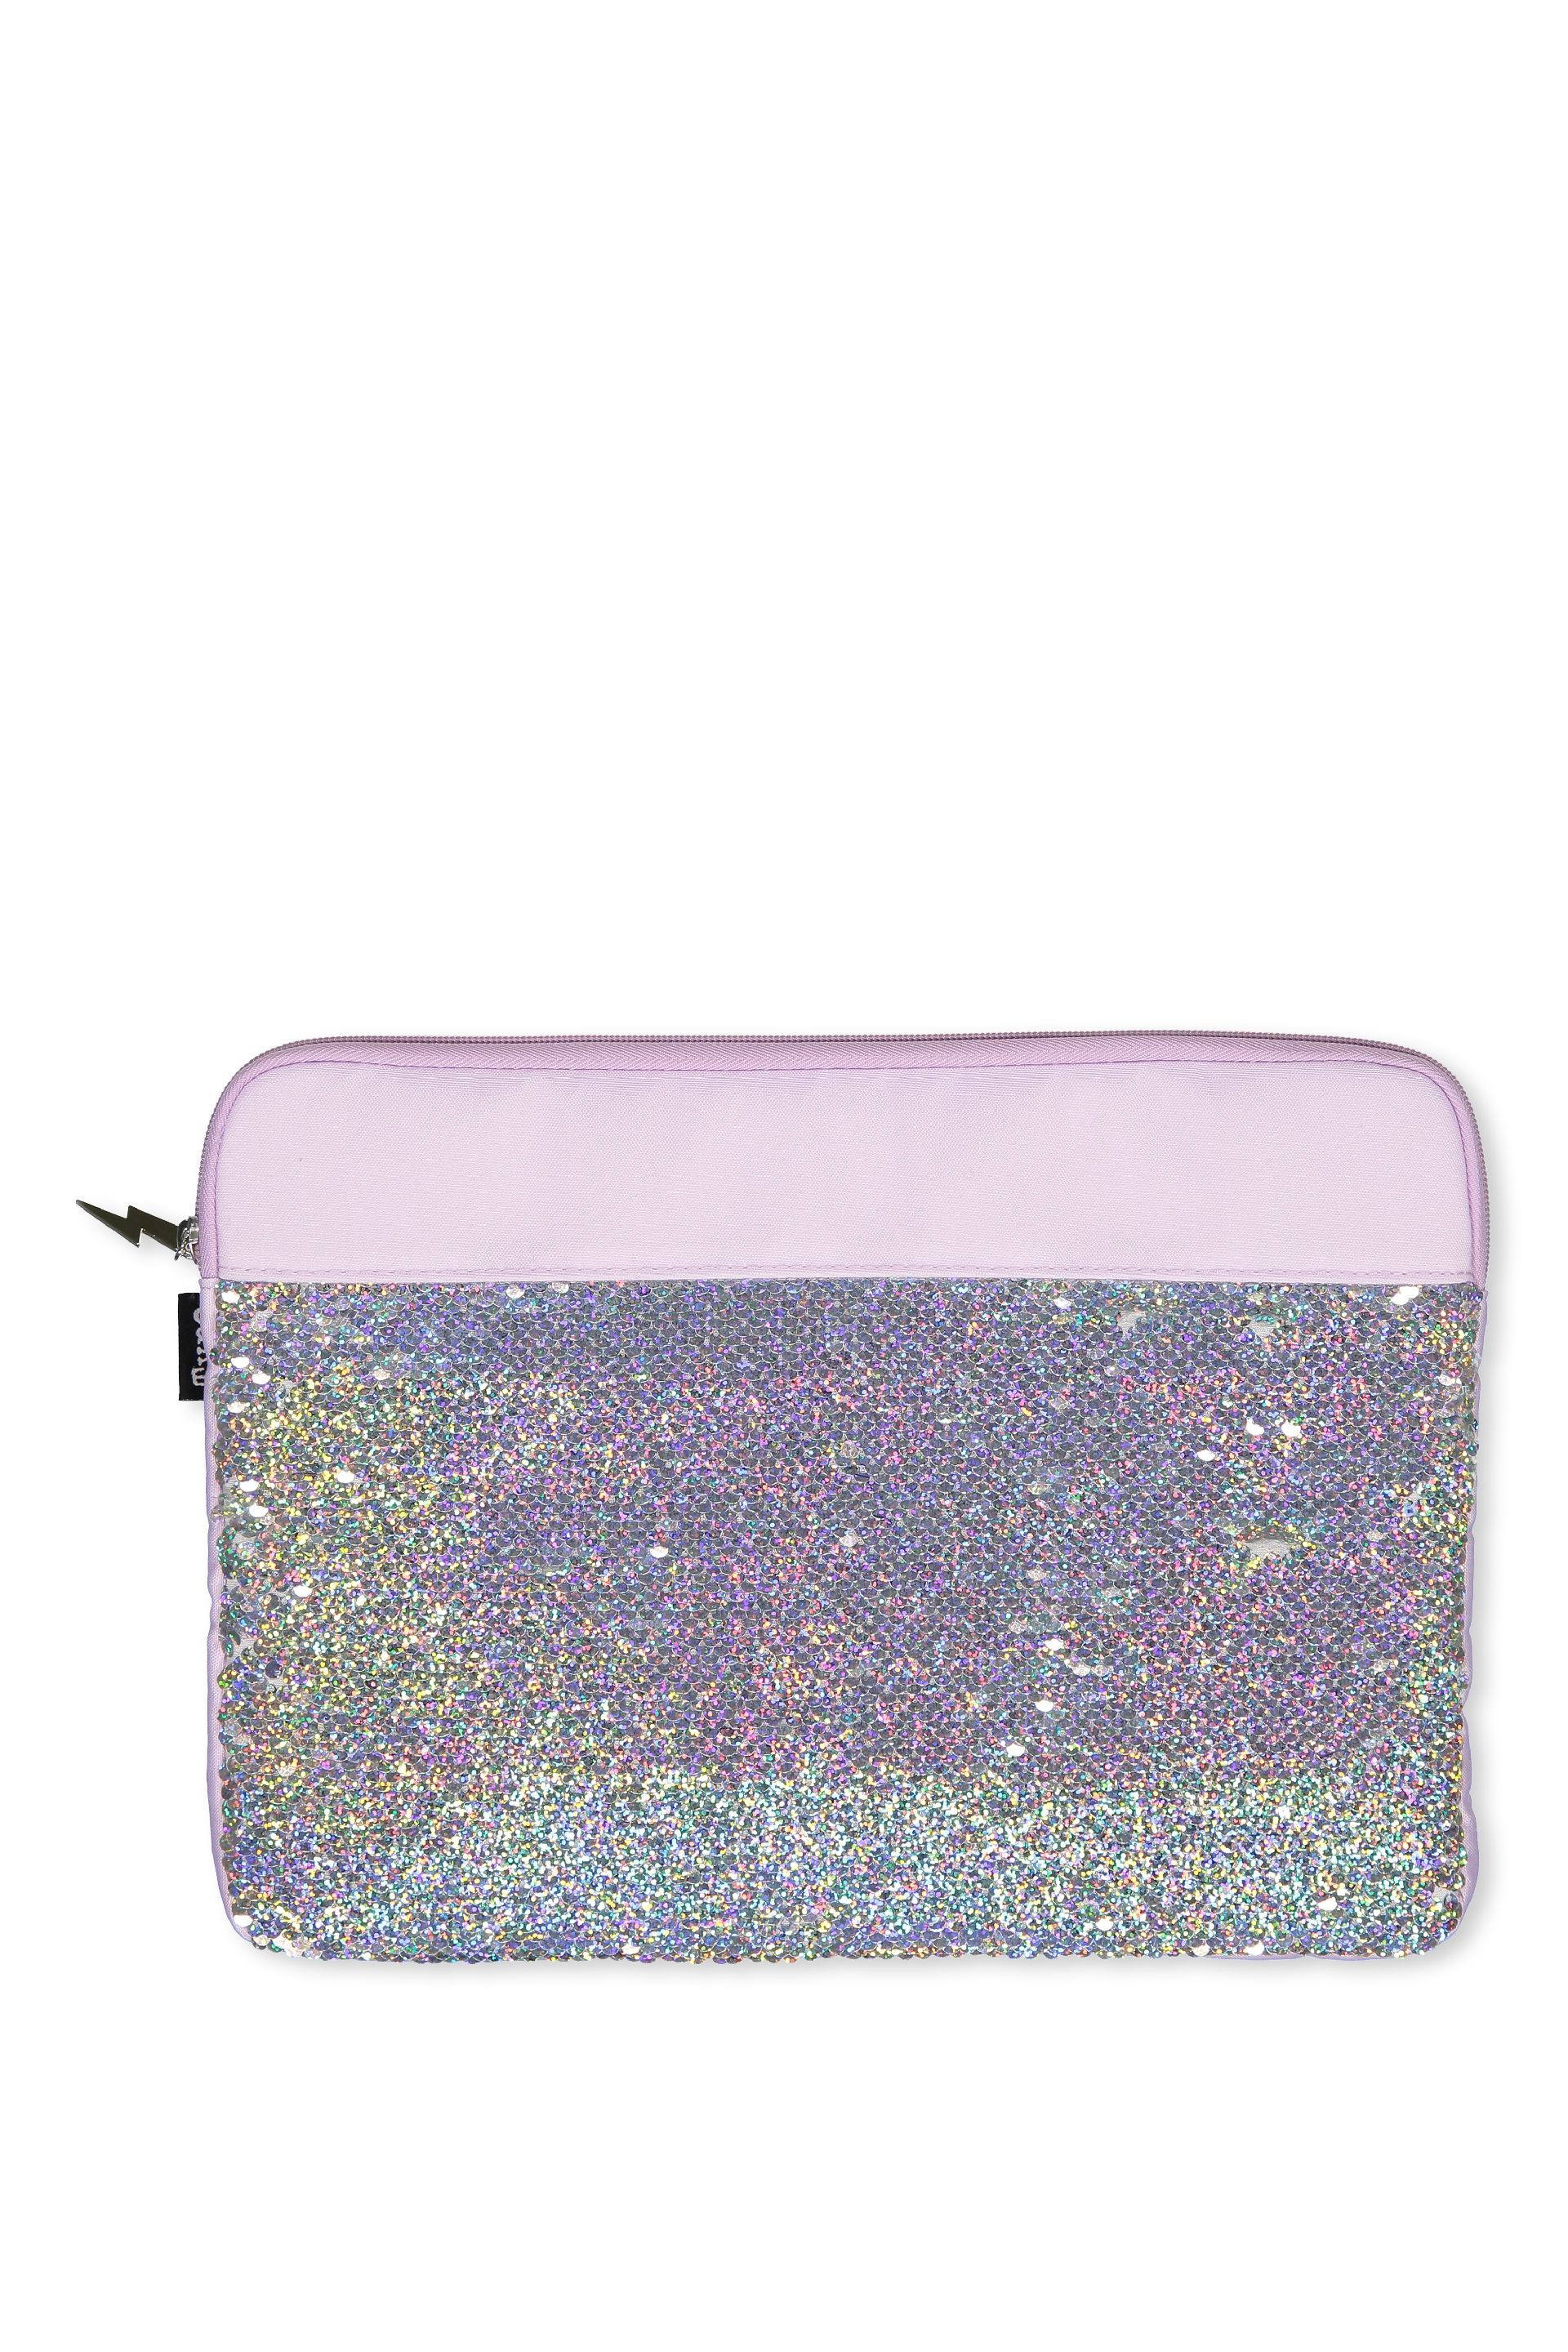 huge discount d5a1b 3f278 Typo Glitter Laptop Case 13, HOLOGRAPHIC SEQUIN | Tech, tools and ...